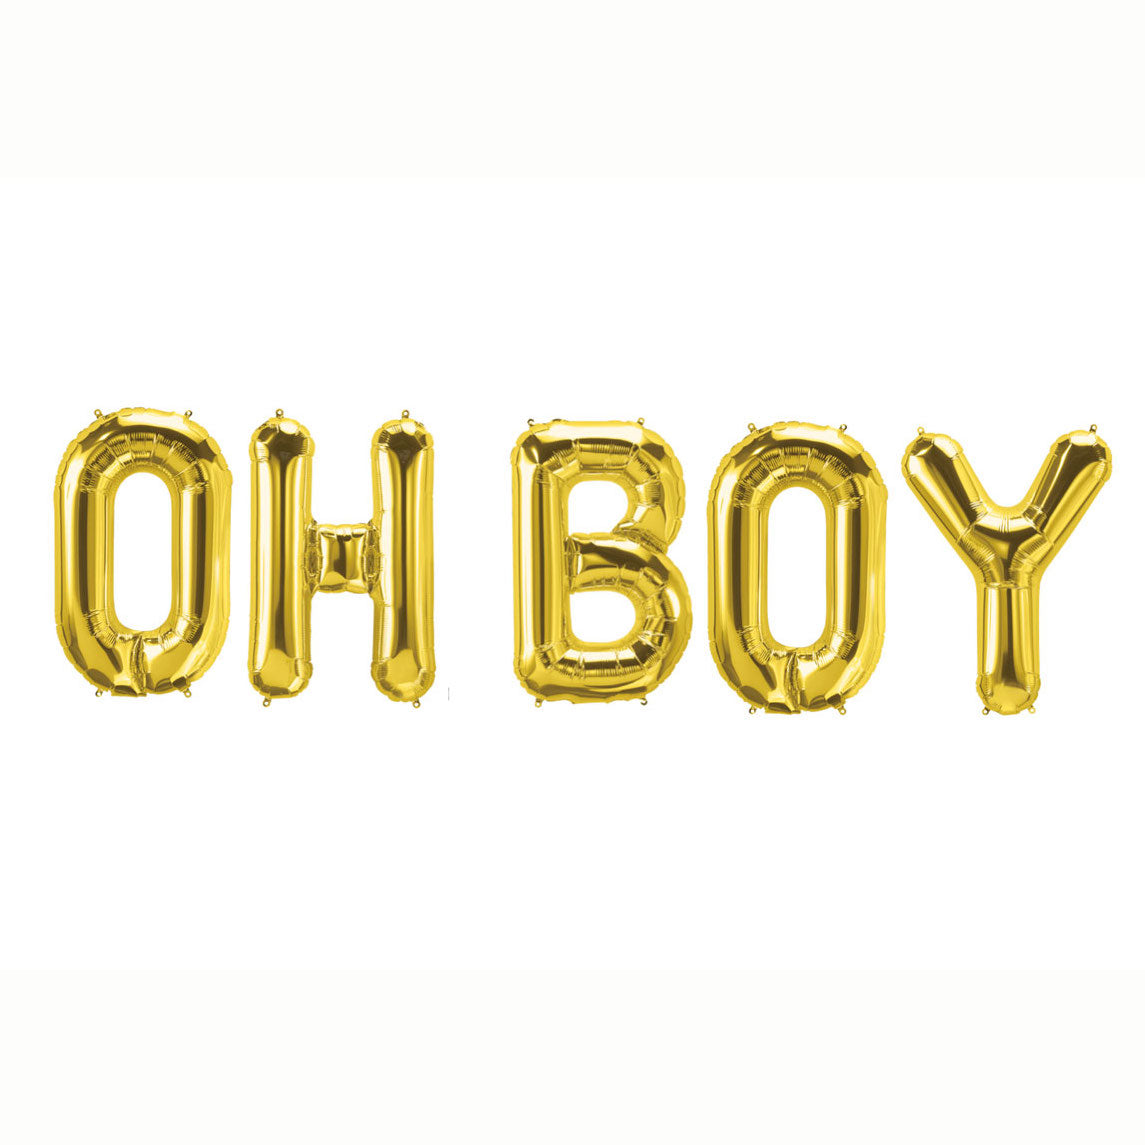 Gold Oh Boy Letter Balloons